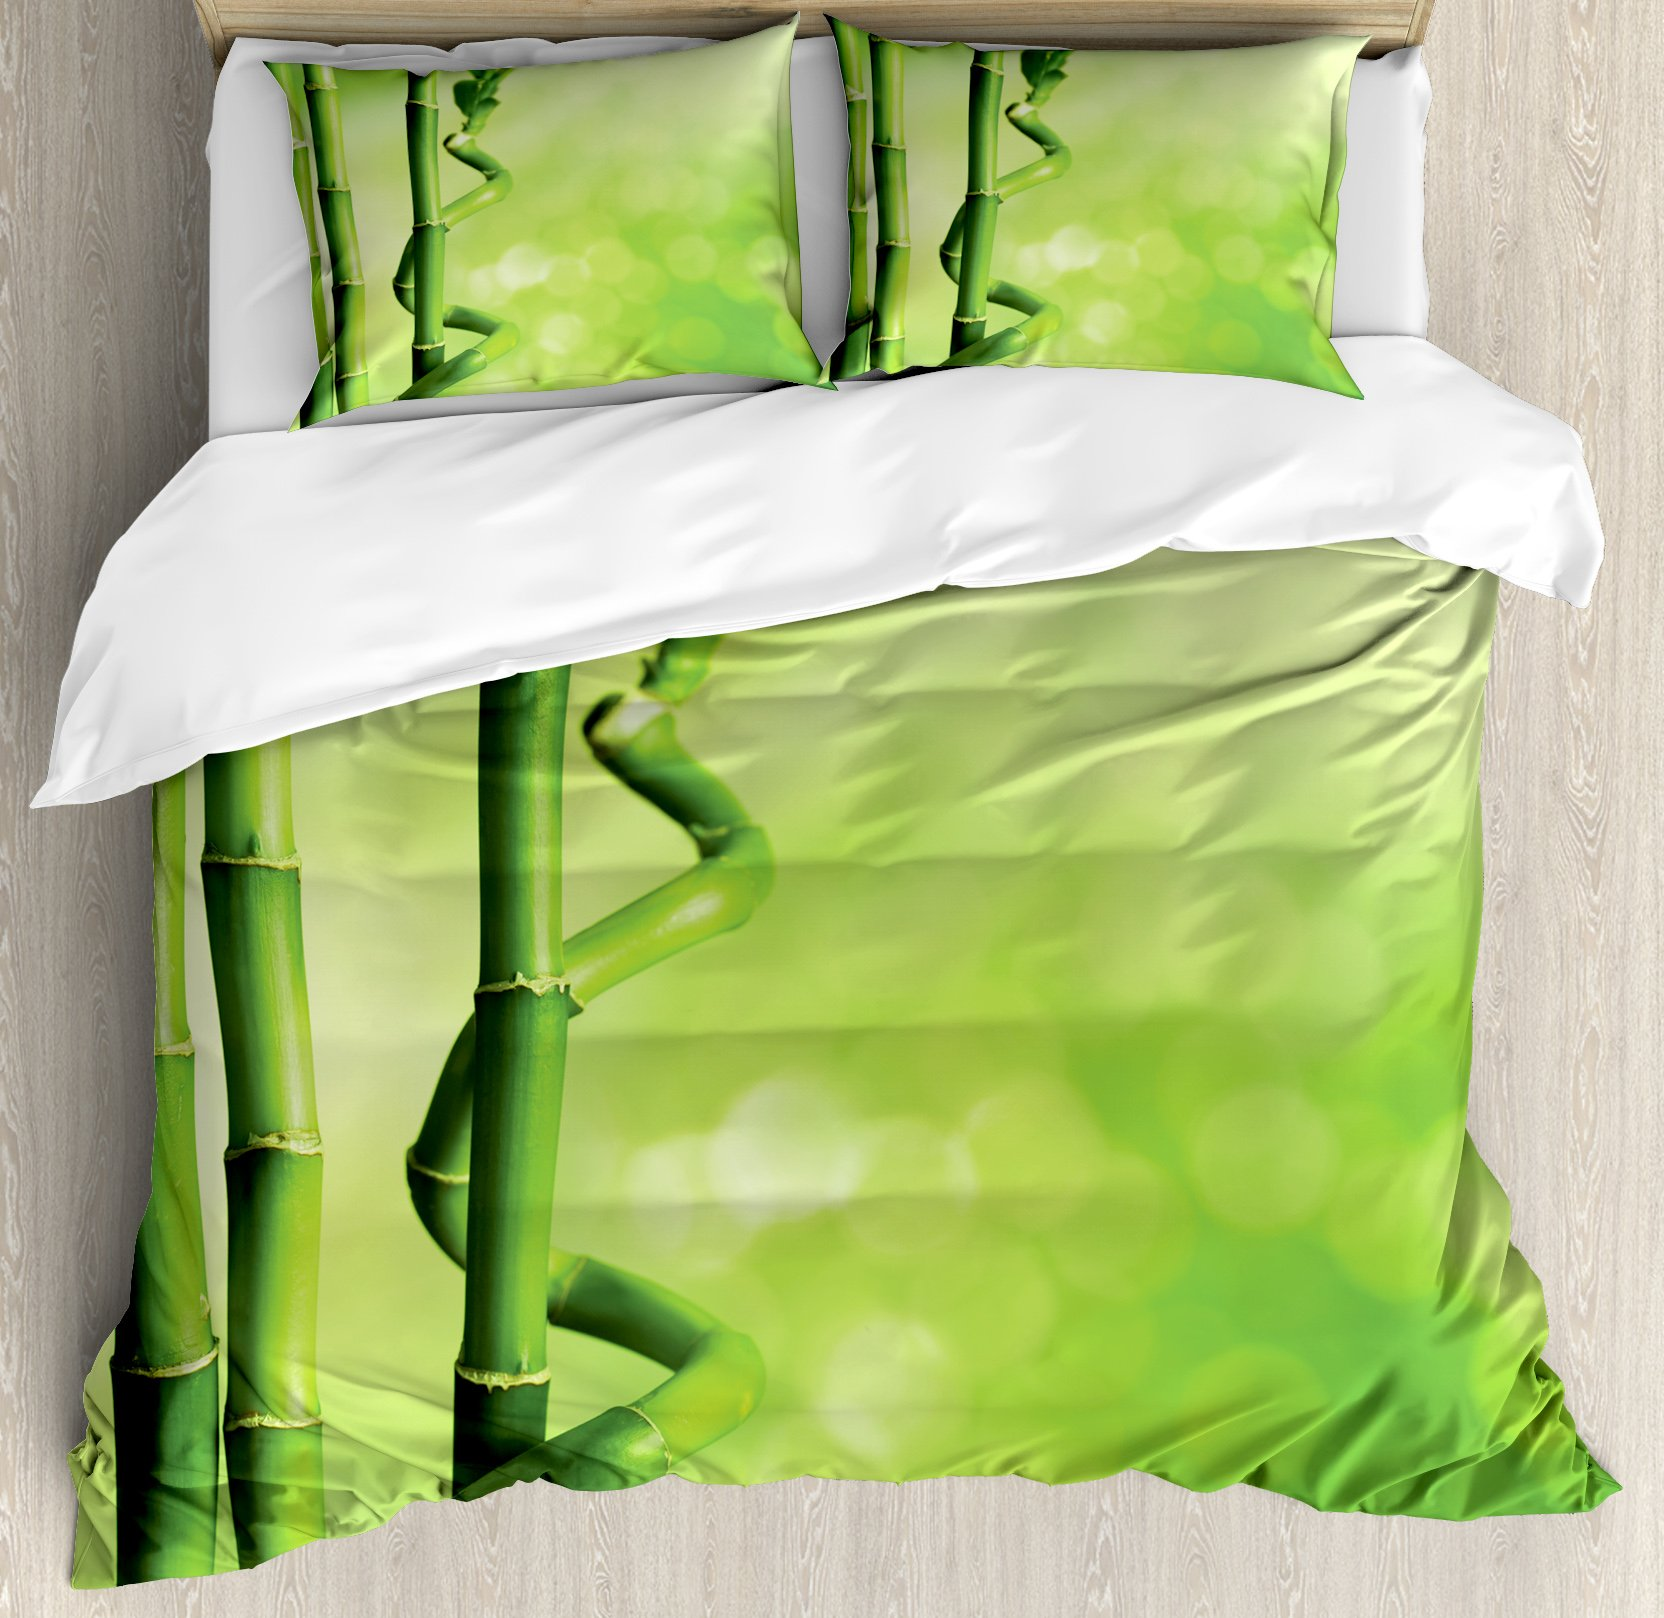 Green King Size Duvet Cover Set by Ambesonne, Bamboo Stems Nature Ecology Sunbeams Soft Spring Scenic Spa Health Relaxation, Decorative 3 Piece Bedding Set with 2 Pillow Shams, Green Light Green by Ambesonne (Image #1)